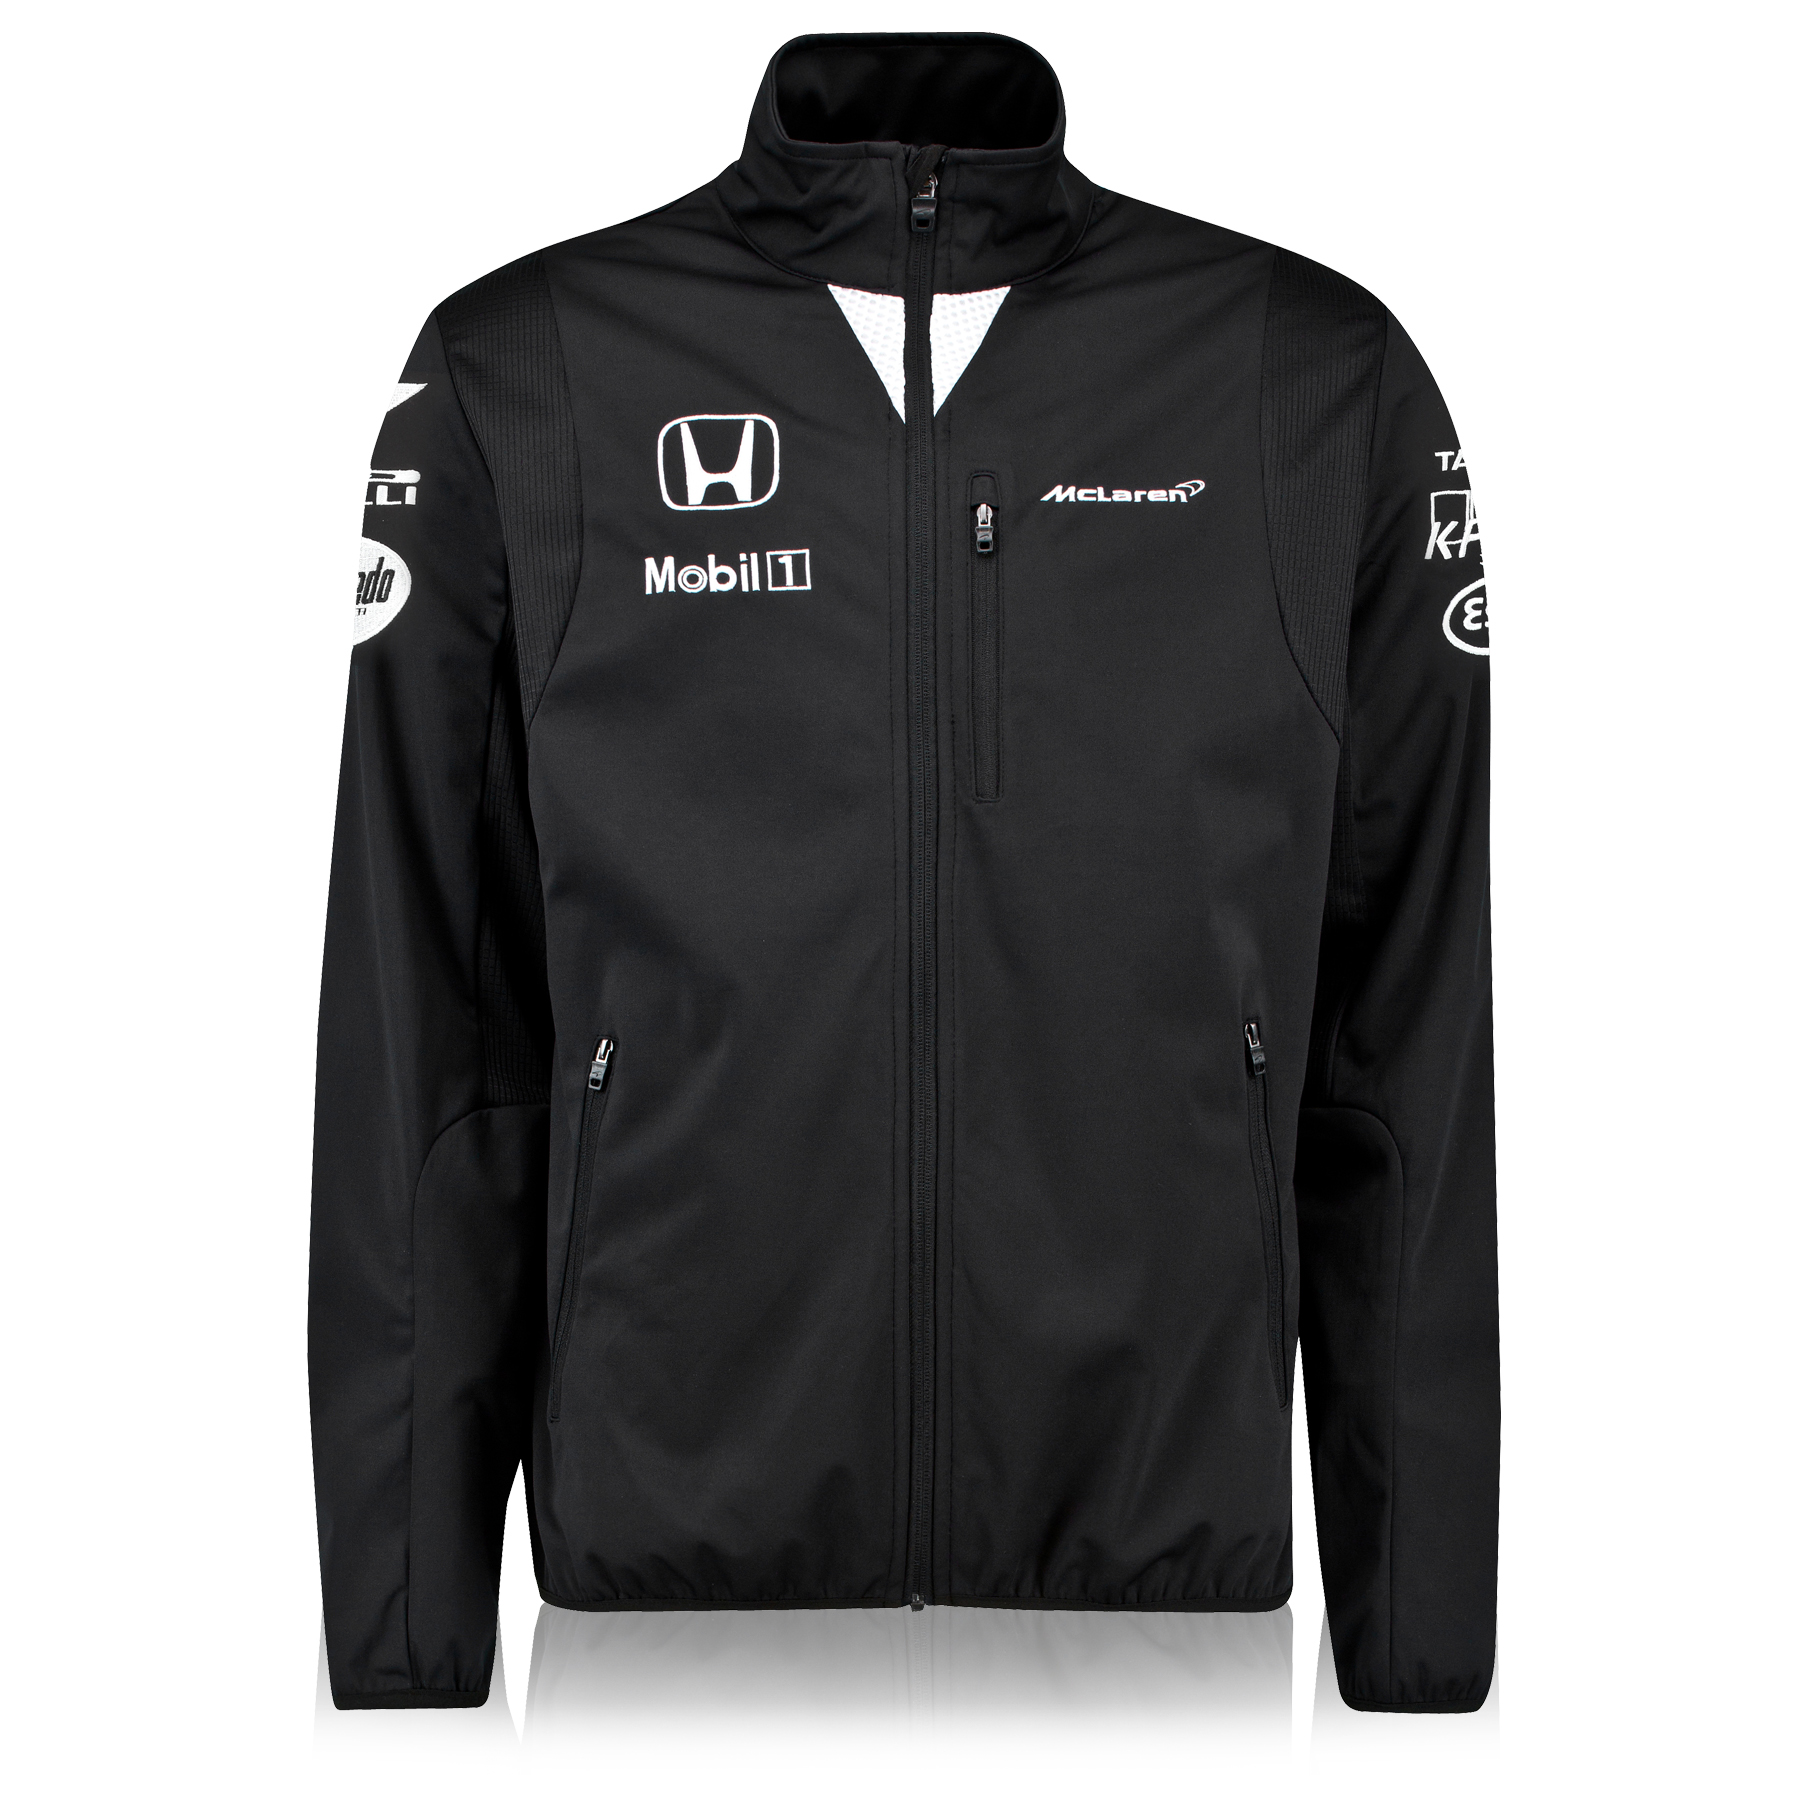 McLaren Honda Team Softshell Jacket Male Black